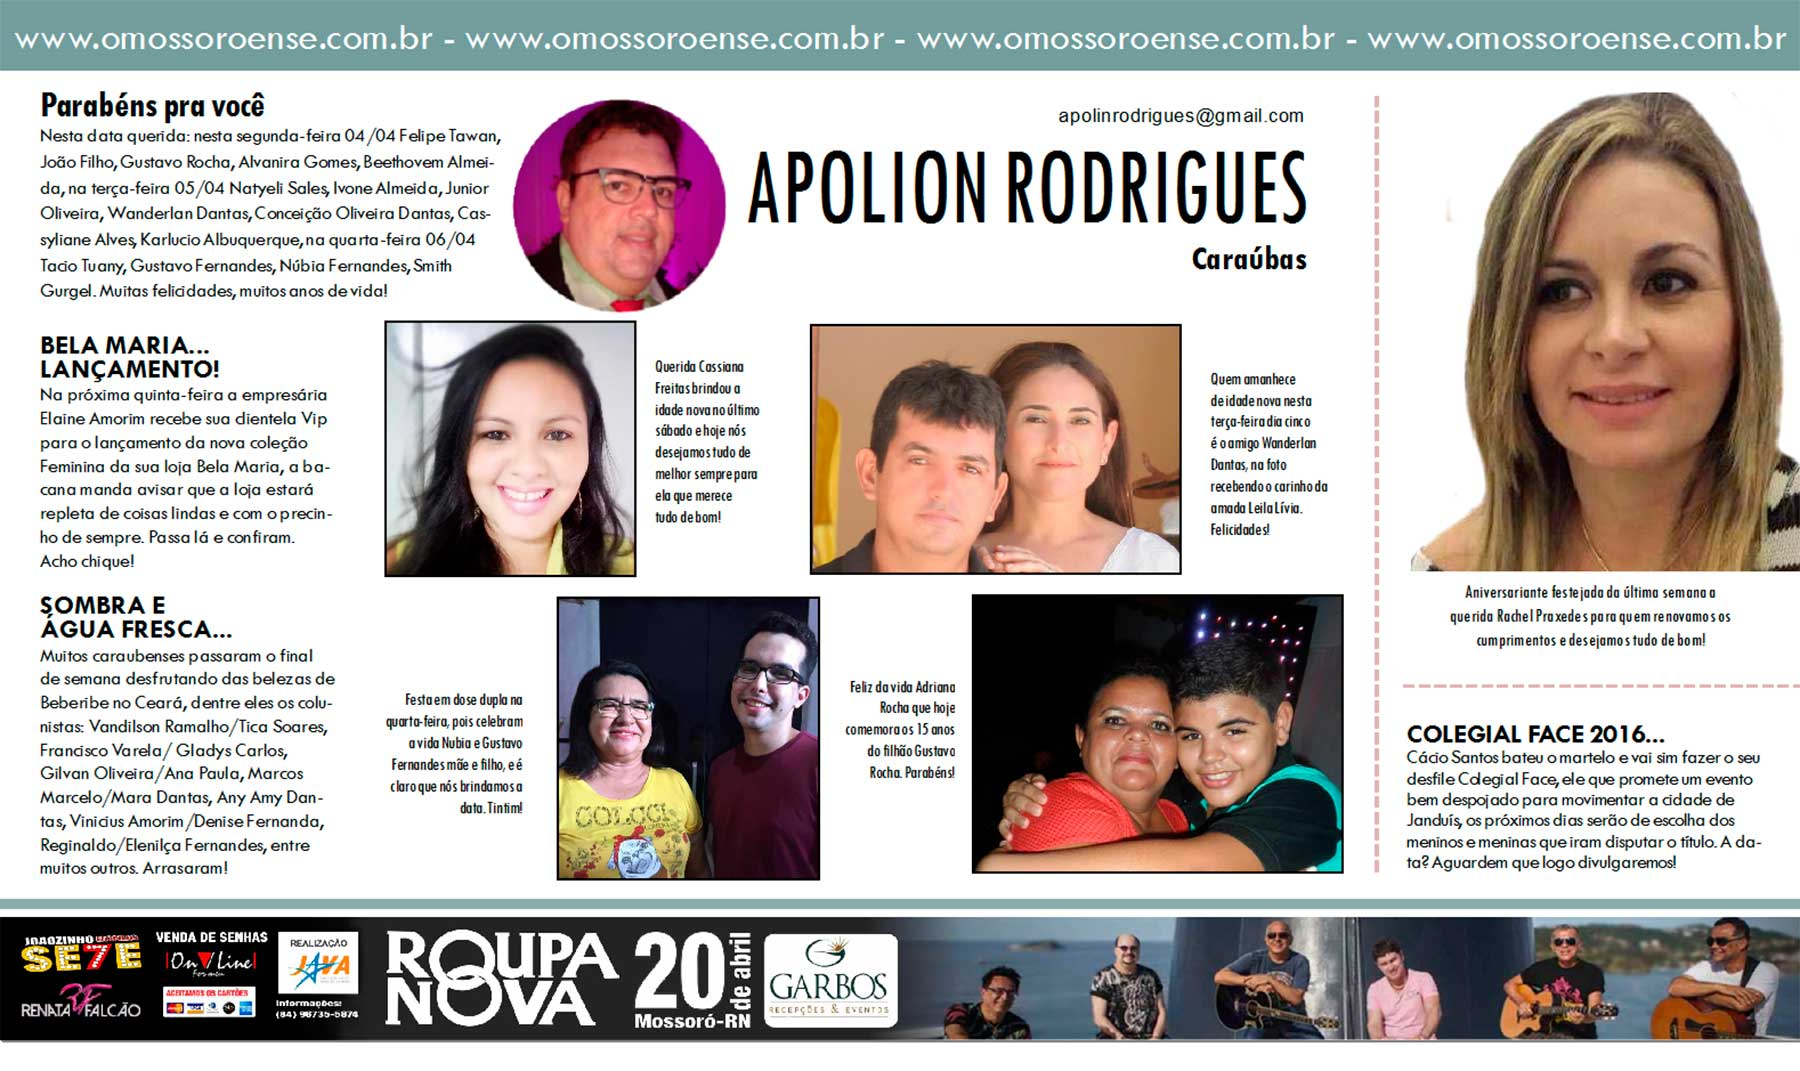 APOLION-RODRIGUES-04-04-2016